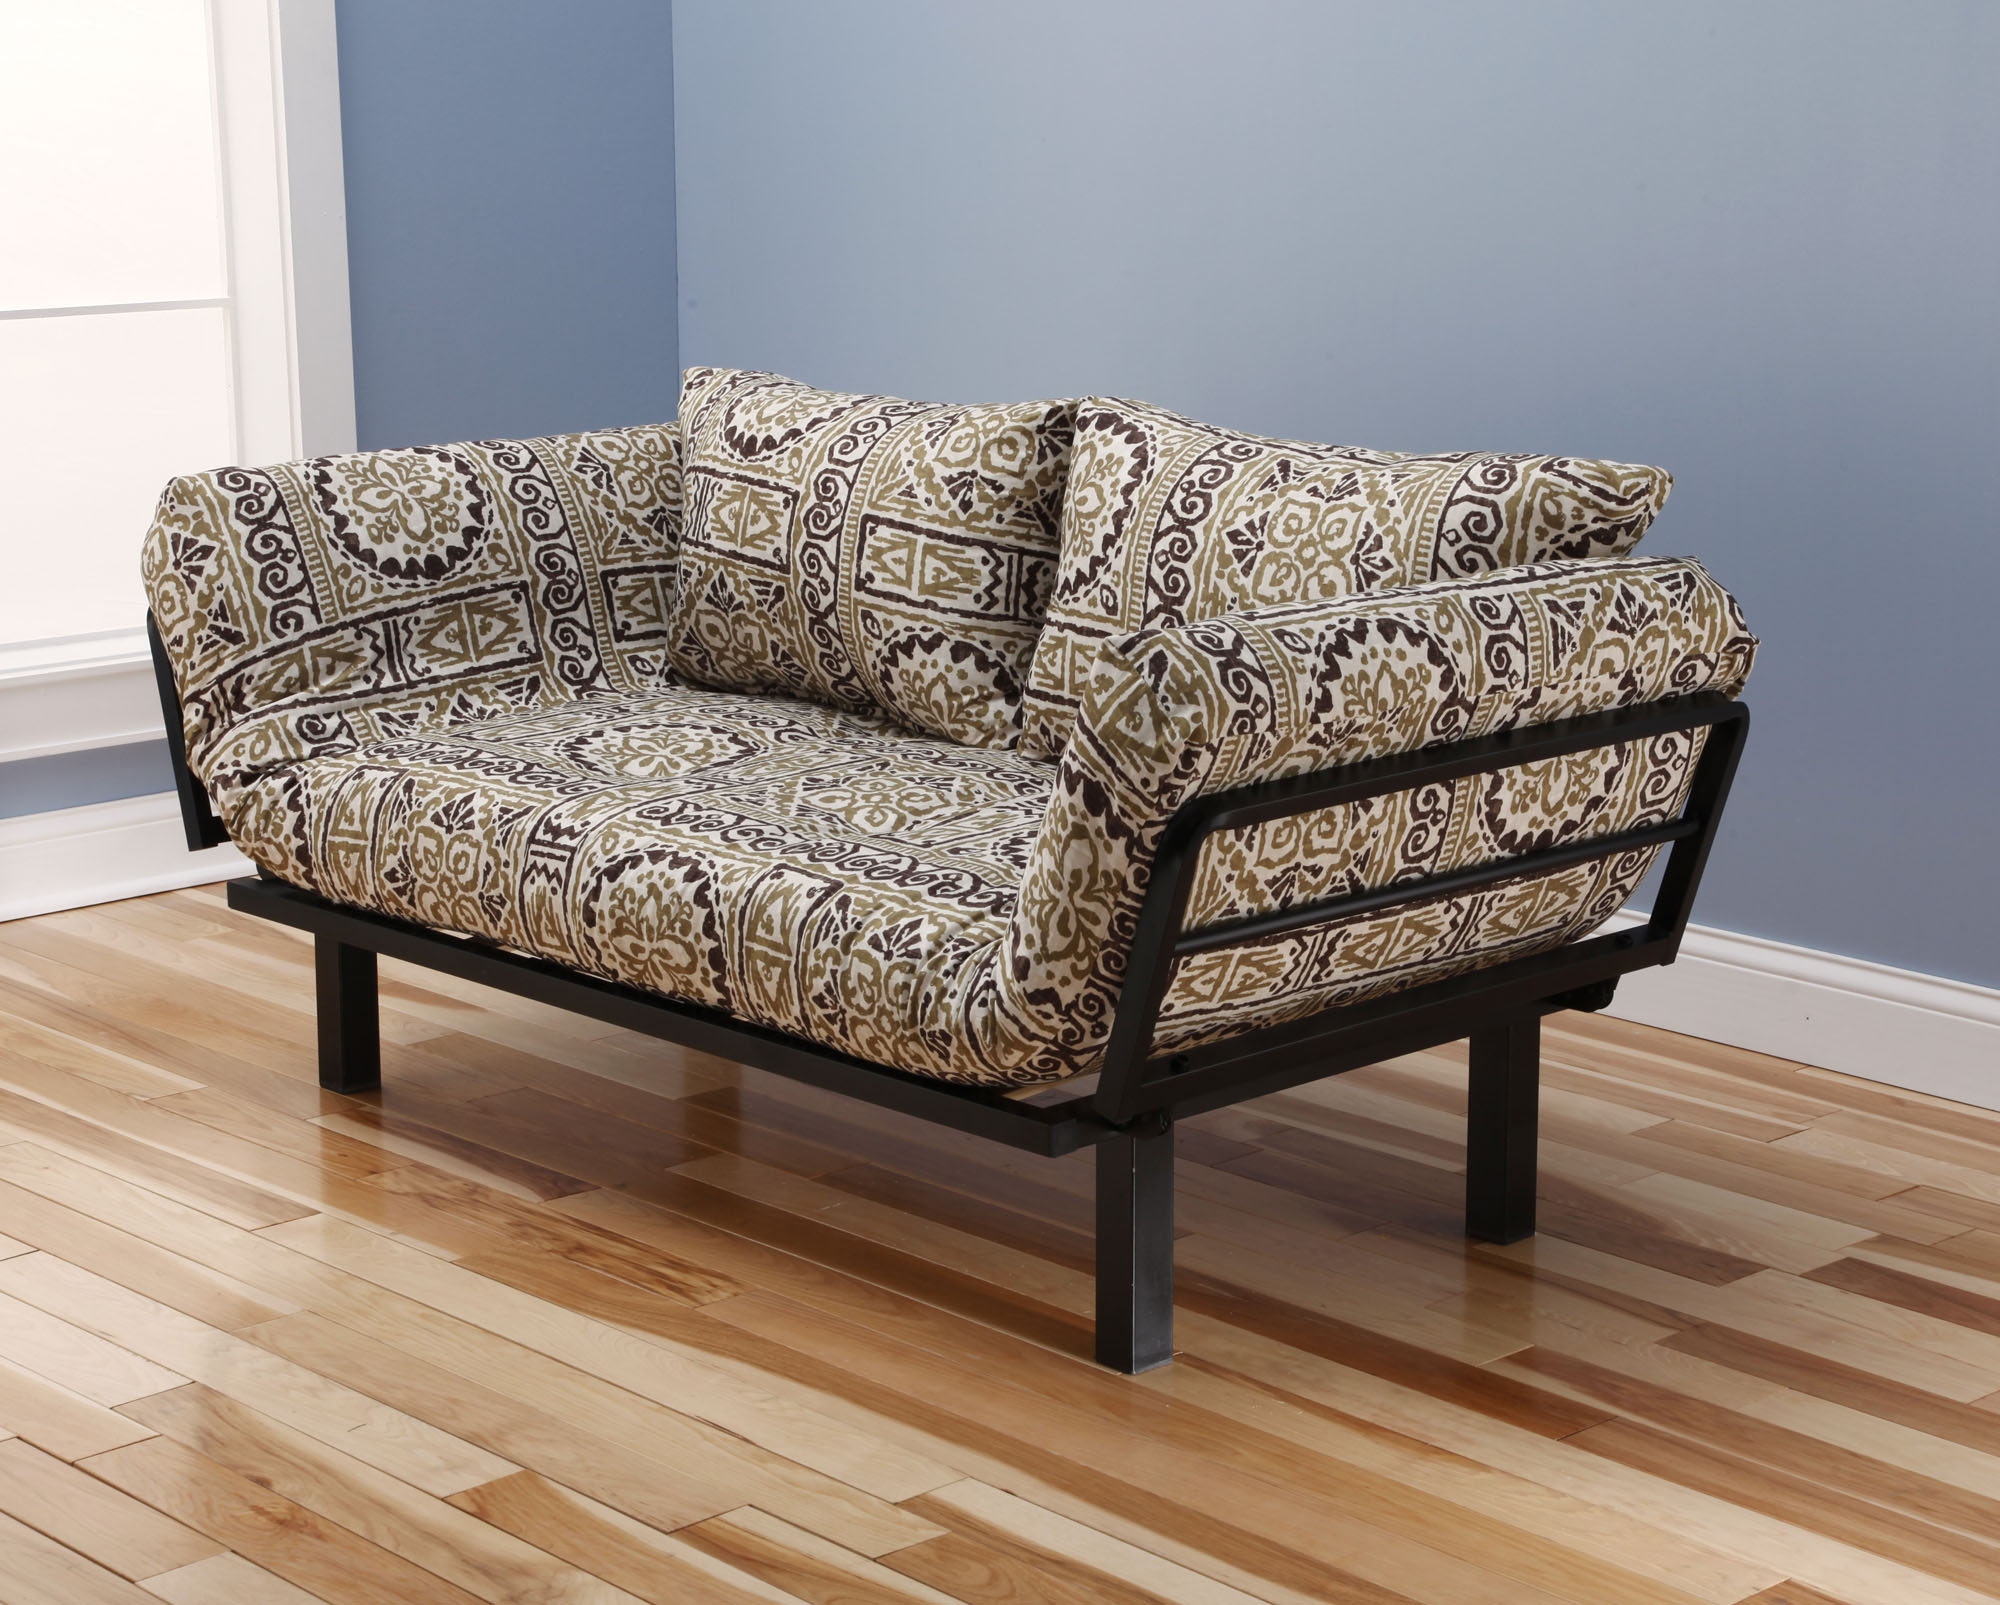 Spacely Futon Daybed Lounger with Mattress Jordan by Kodiak